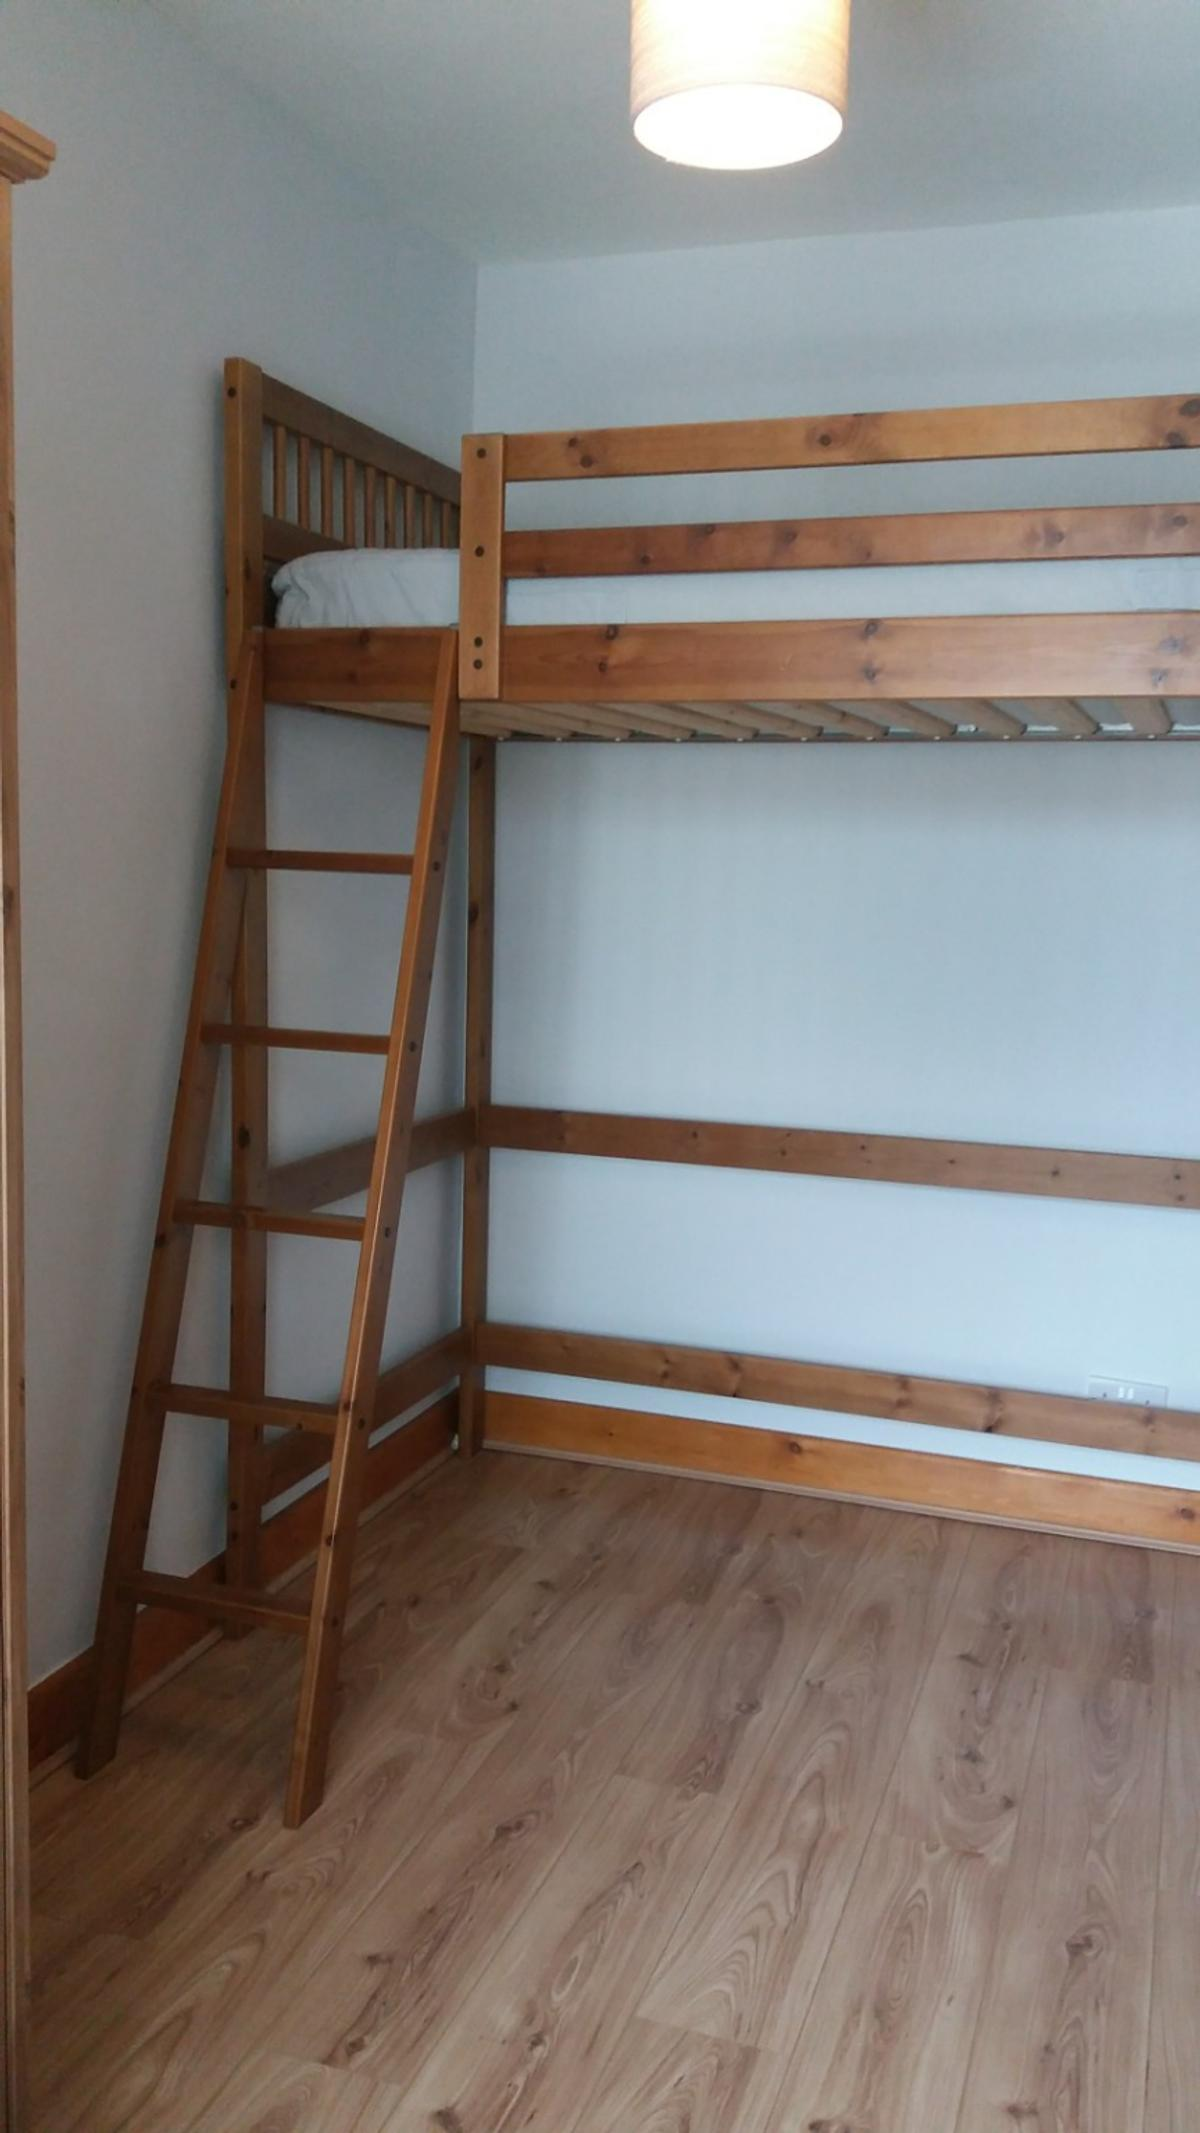 Wood High Sleeper Loft Bunk Bed Ikea Single In S65 Rotherham For 75 00 For Sale Shpock